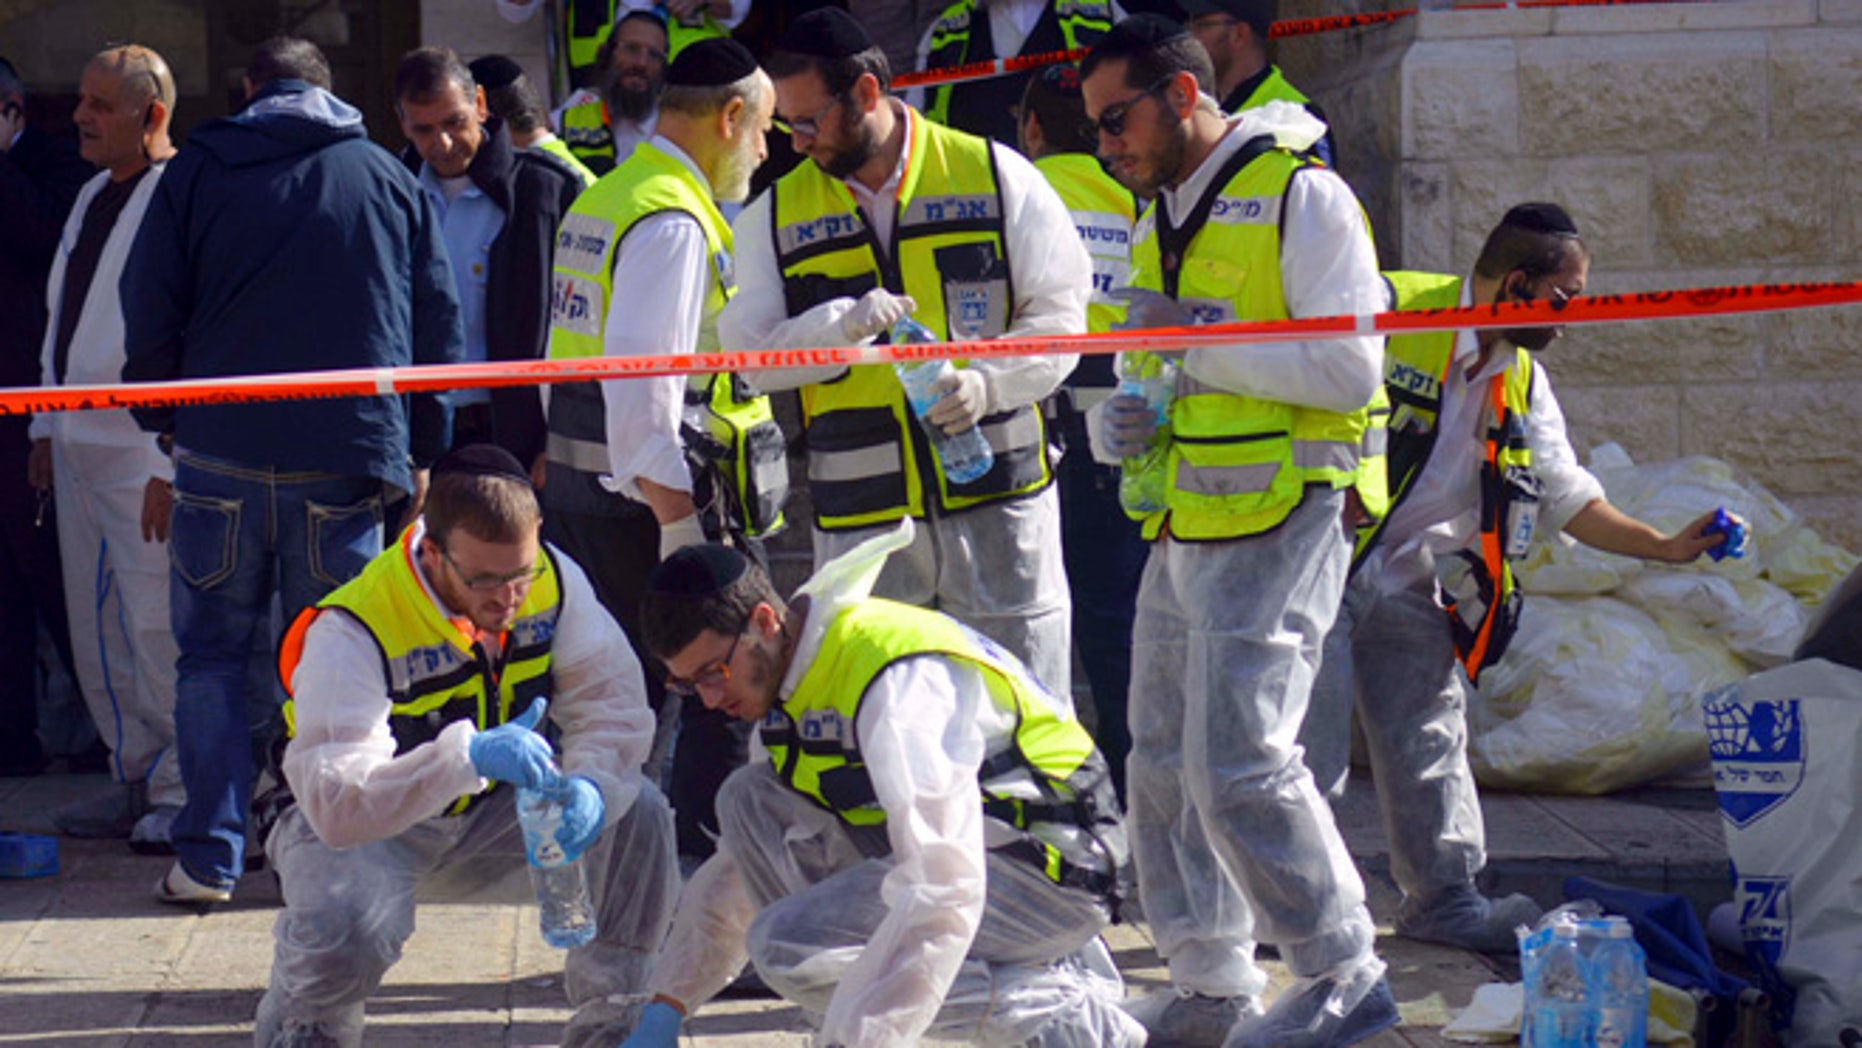 Nov. 18, 2014: Paramedics wipe the blood from pavement outside a synagogue after a shooting attack in Jerusalem. (AP)